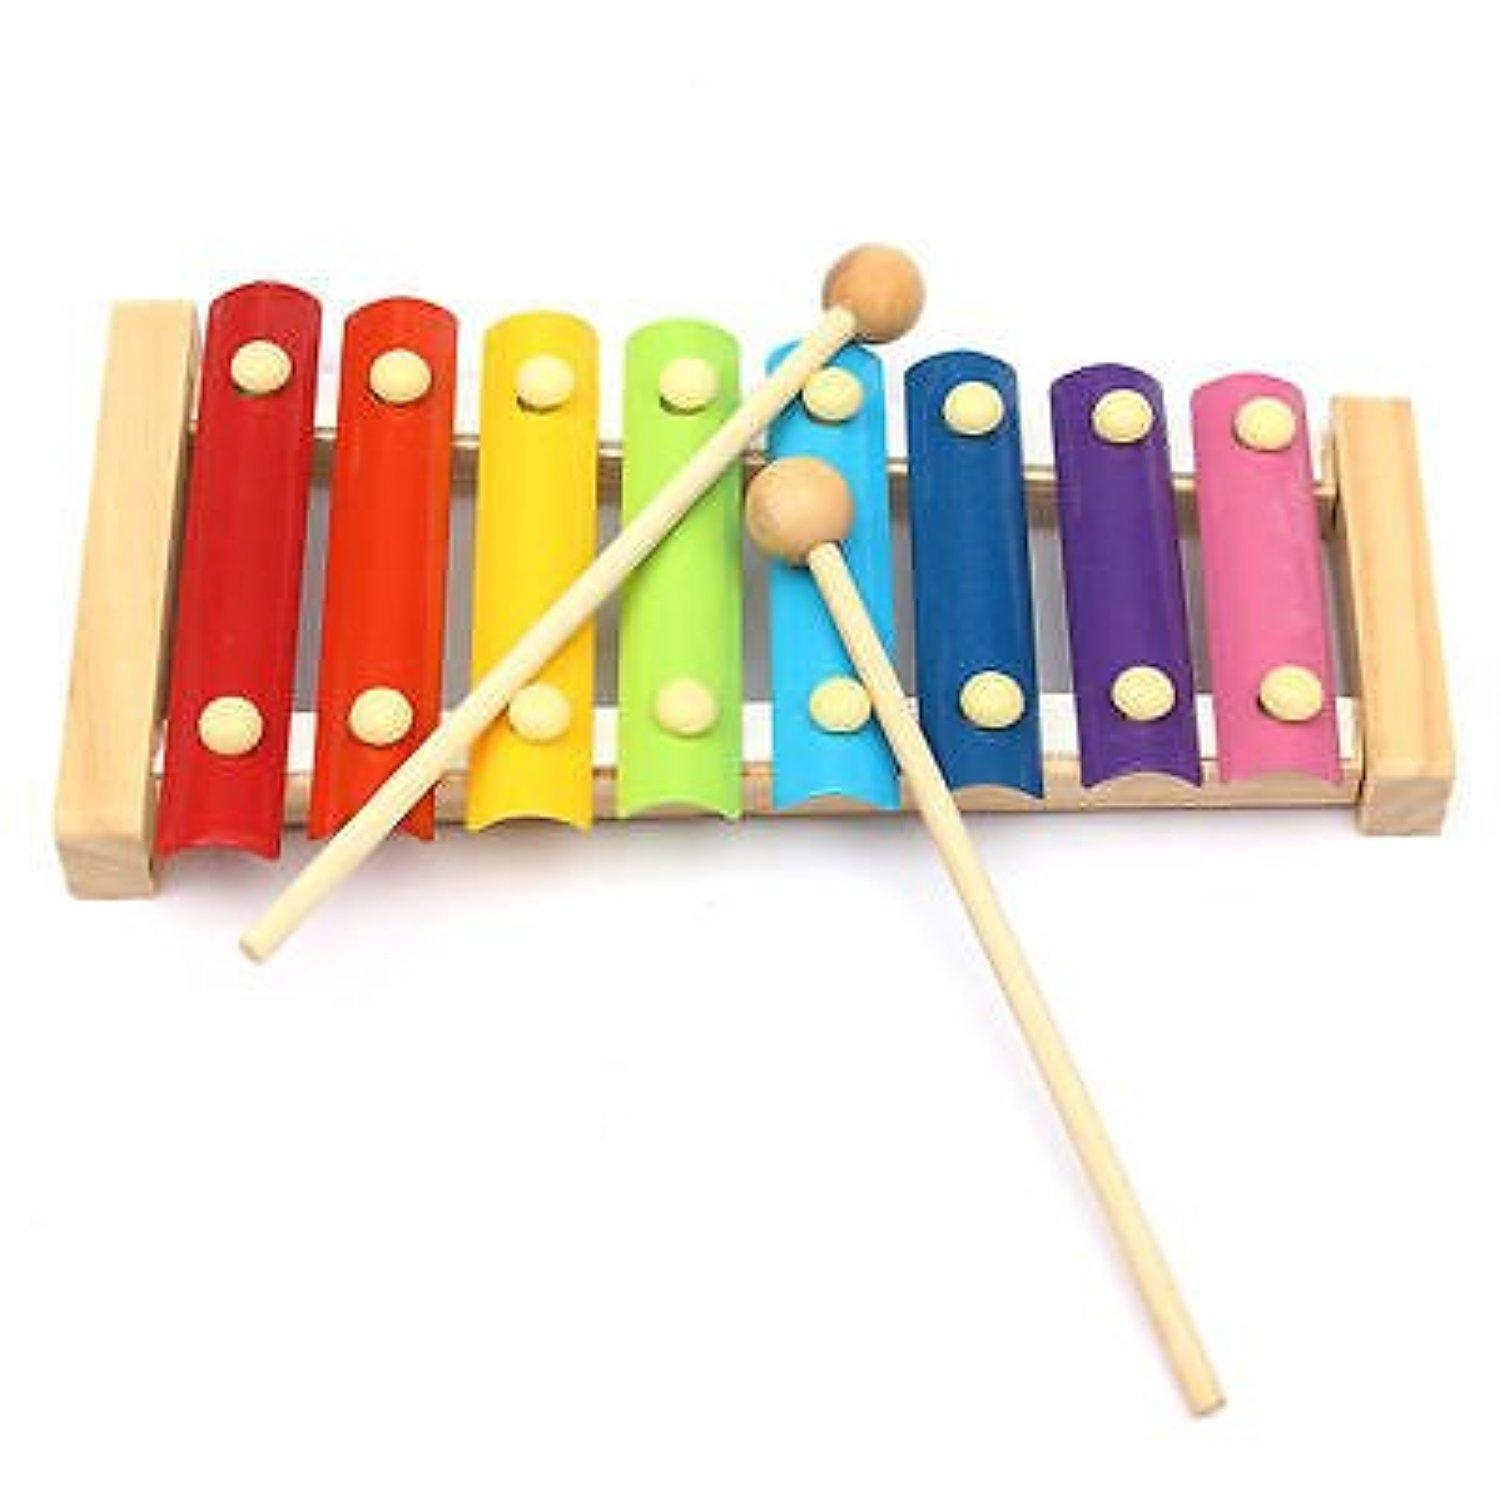 Xylophone clipart child's. Free wooden cliparts download